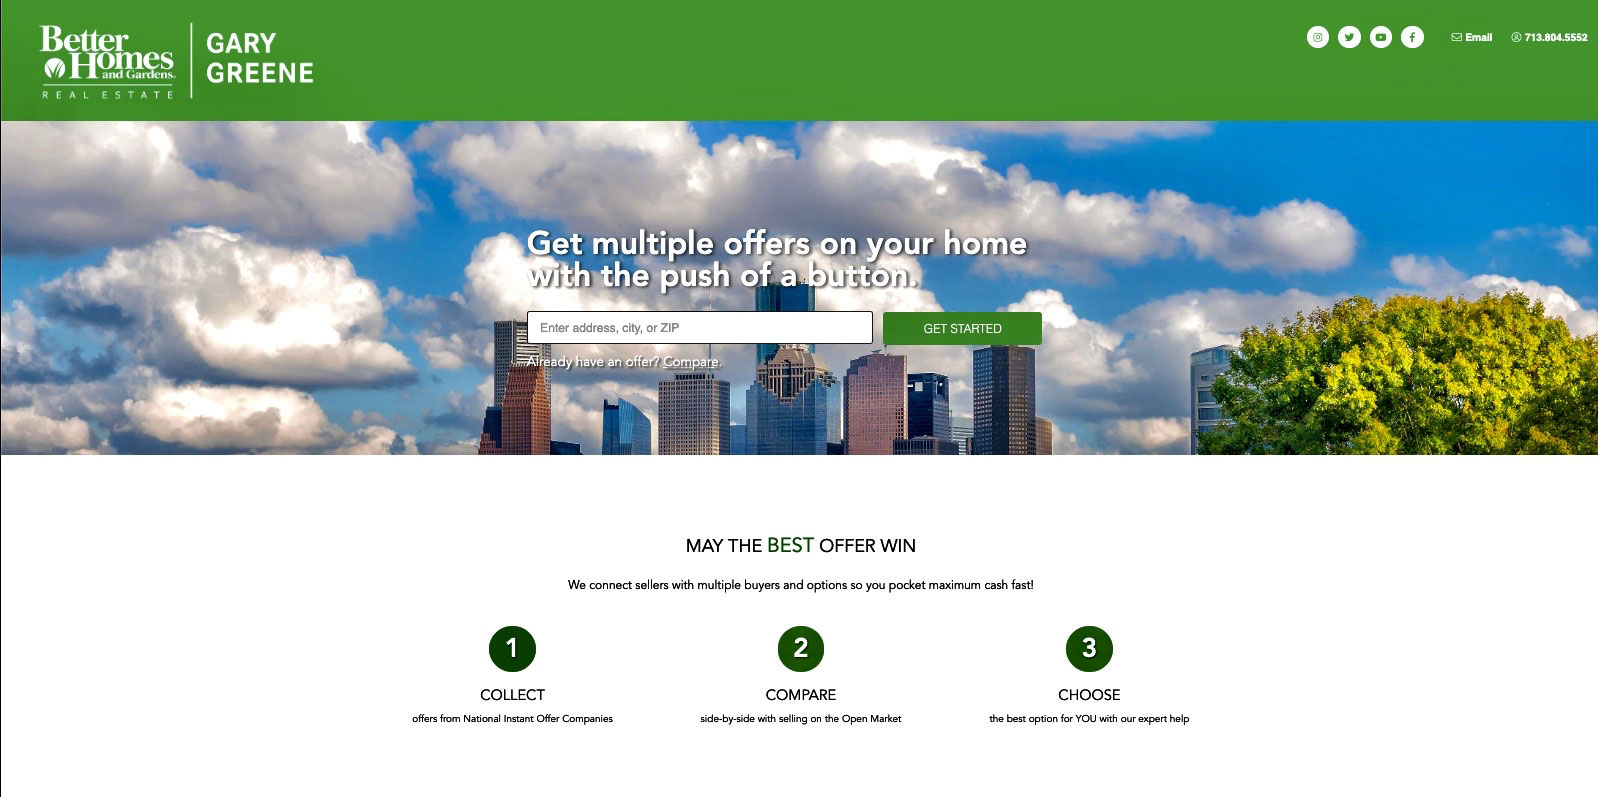 Skip the home showings, keep the agent: Brokerages, iBuyers team up